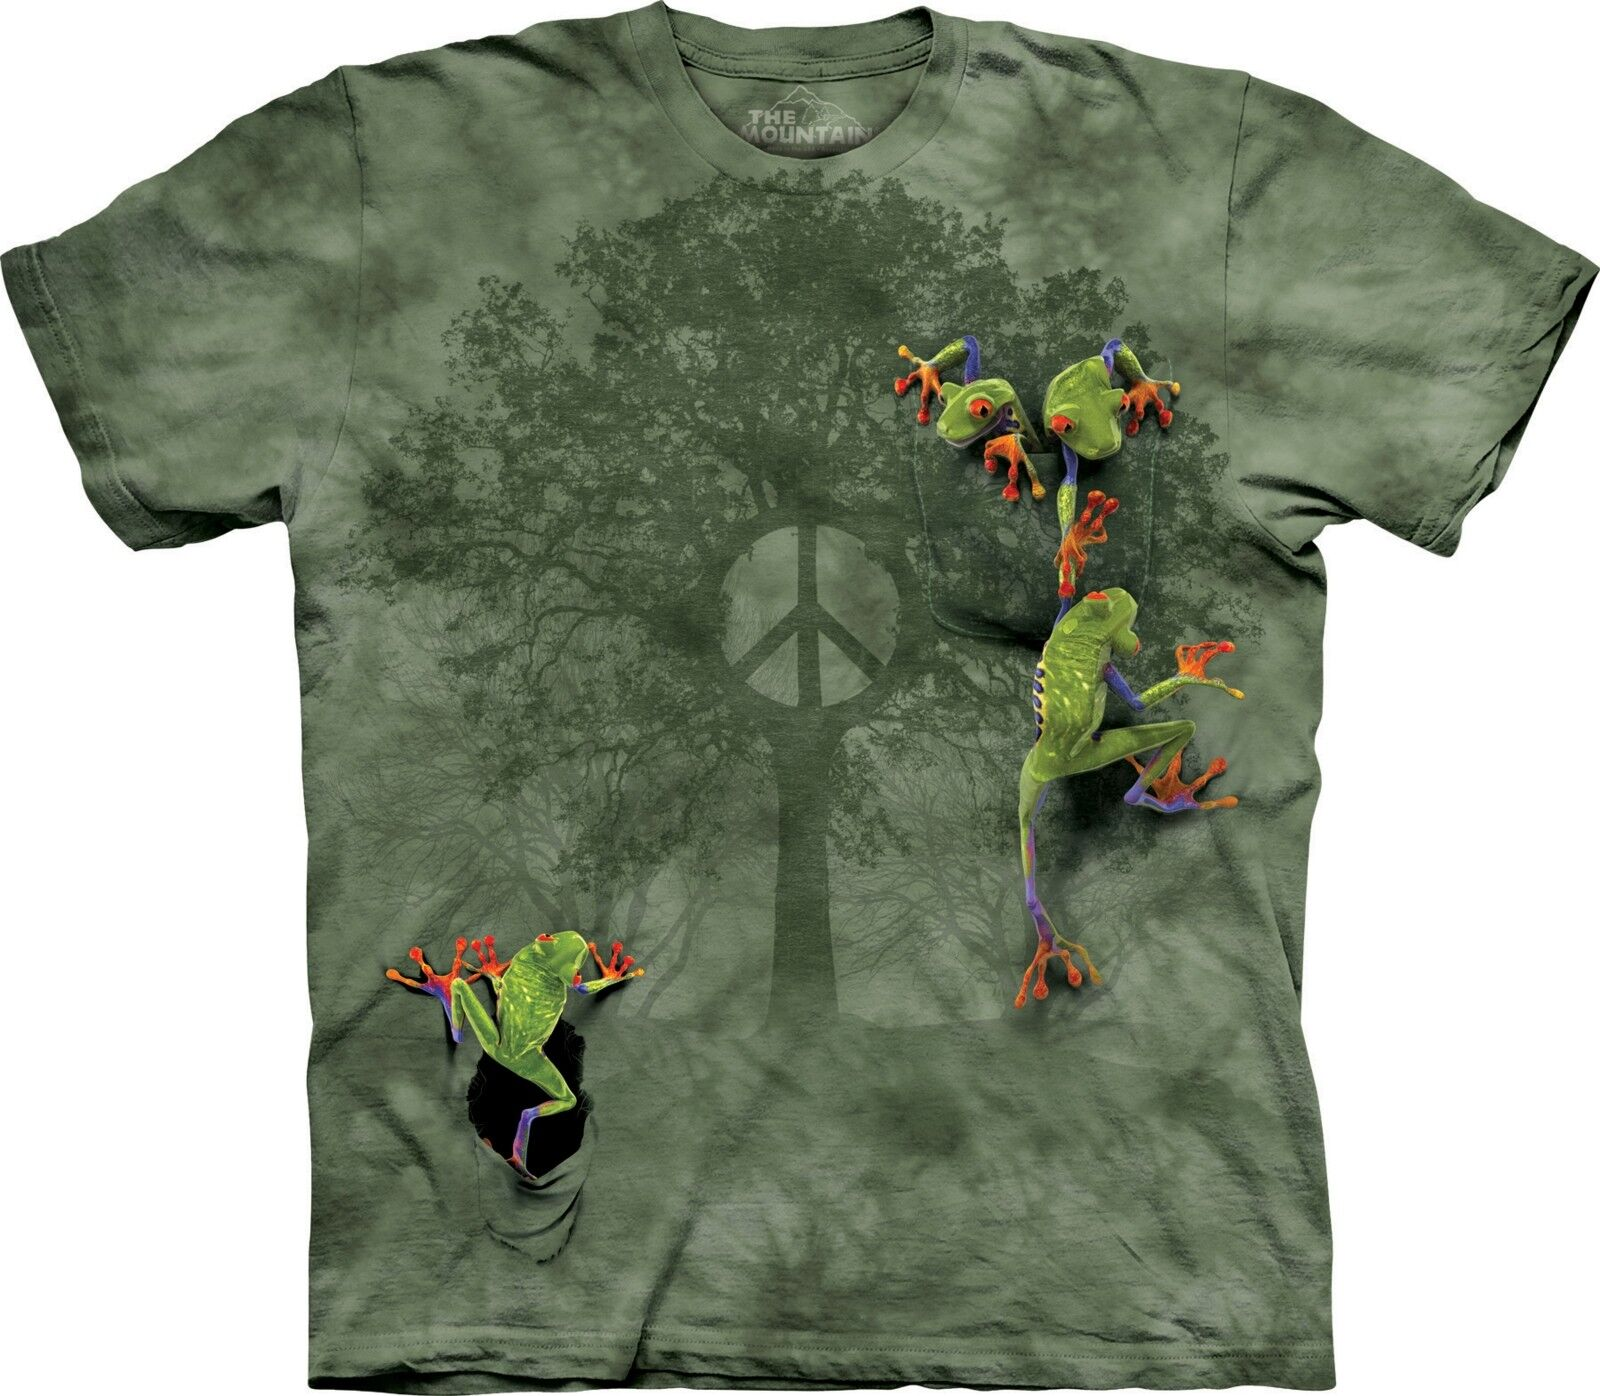 Peace Tree Frog Amphibian T-Shirt Adult Unisex The Mountain